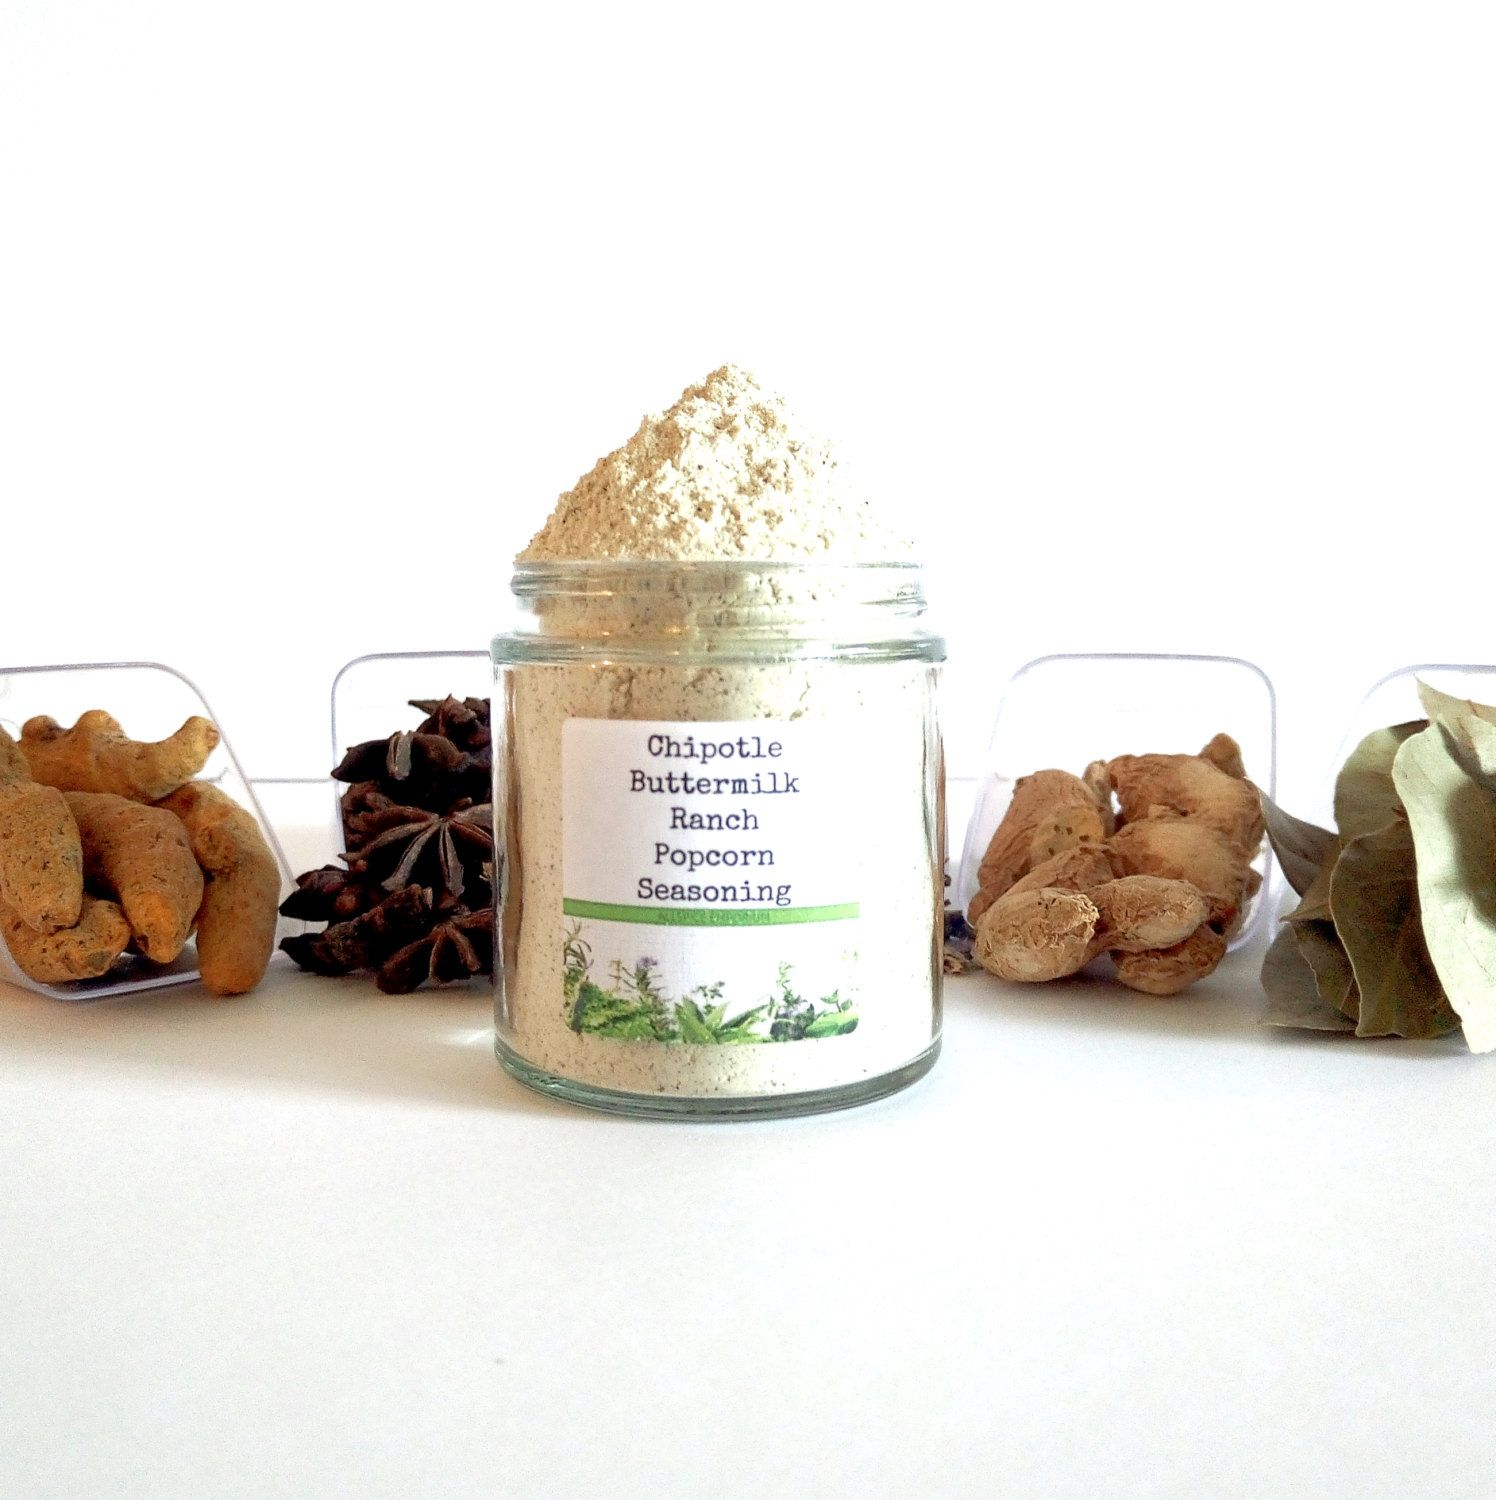 Chipotle buttermilk ranch popcorn seasoning gifts for